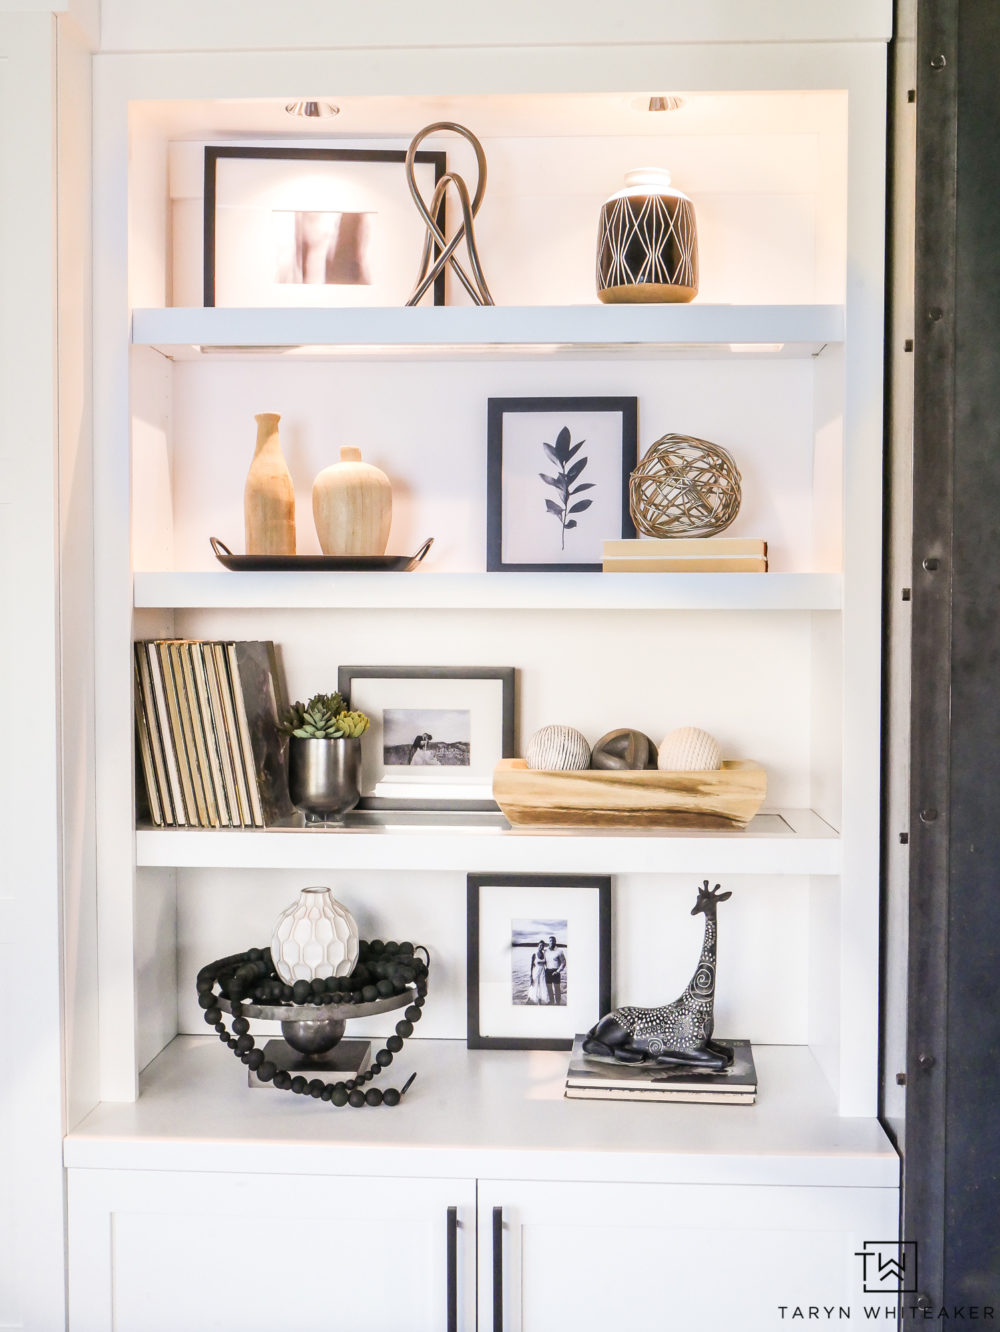 Tips for great shelf styling. it's all about balance!